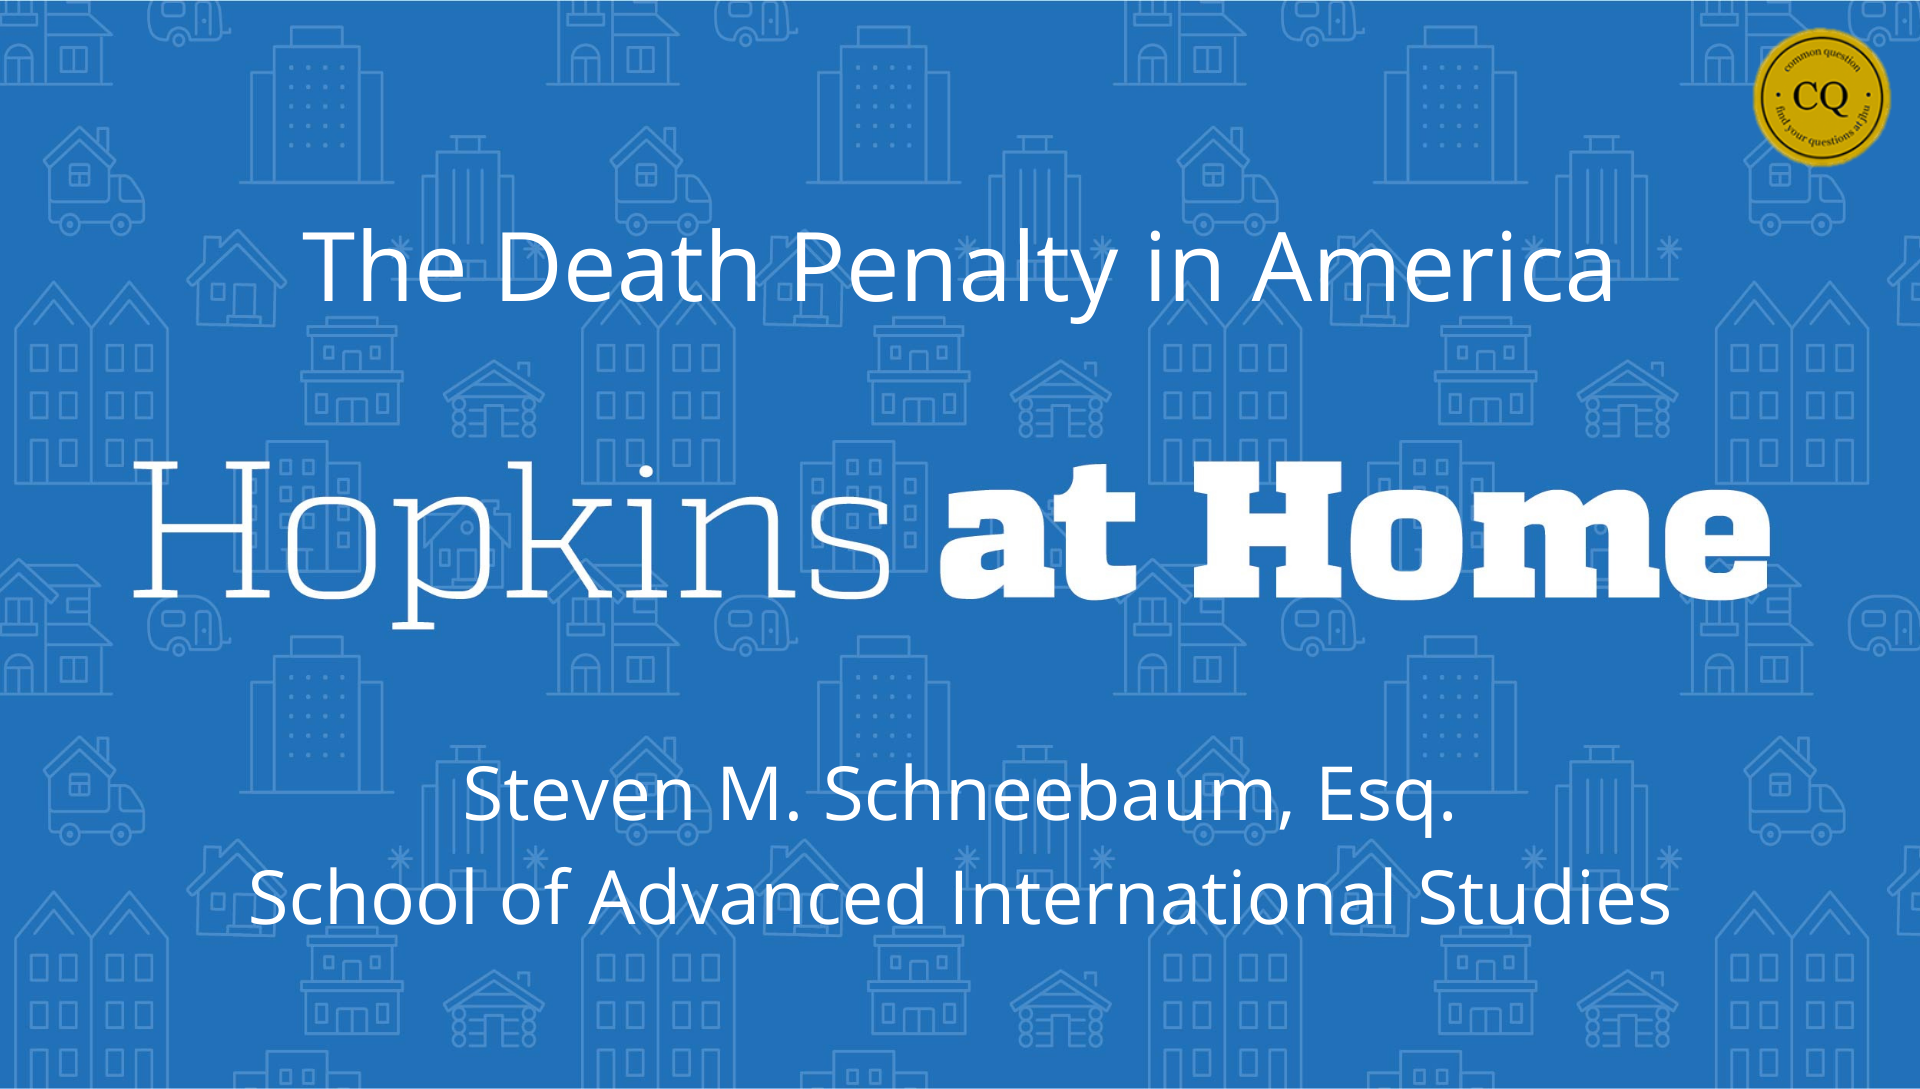 The Death Penalty in America header image